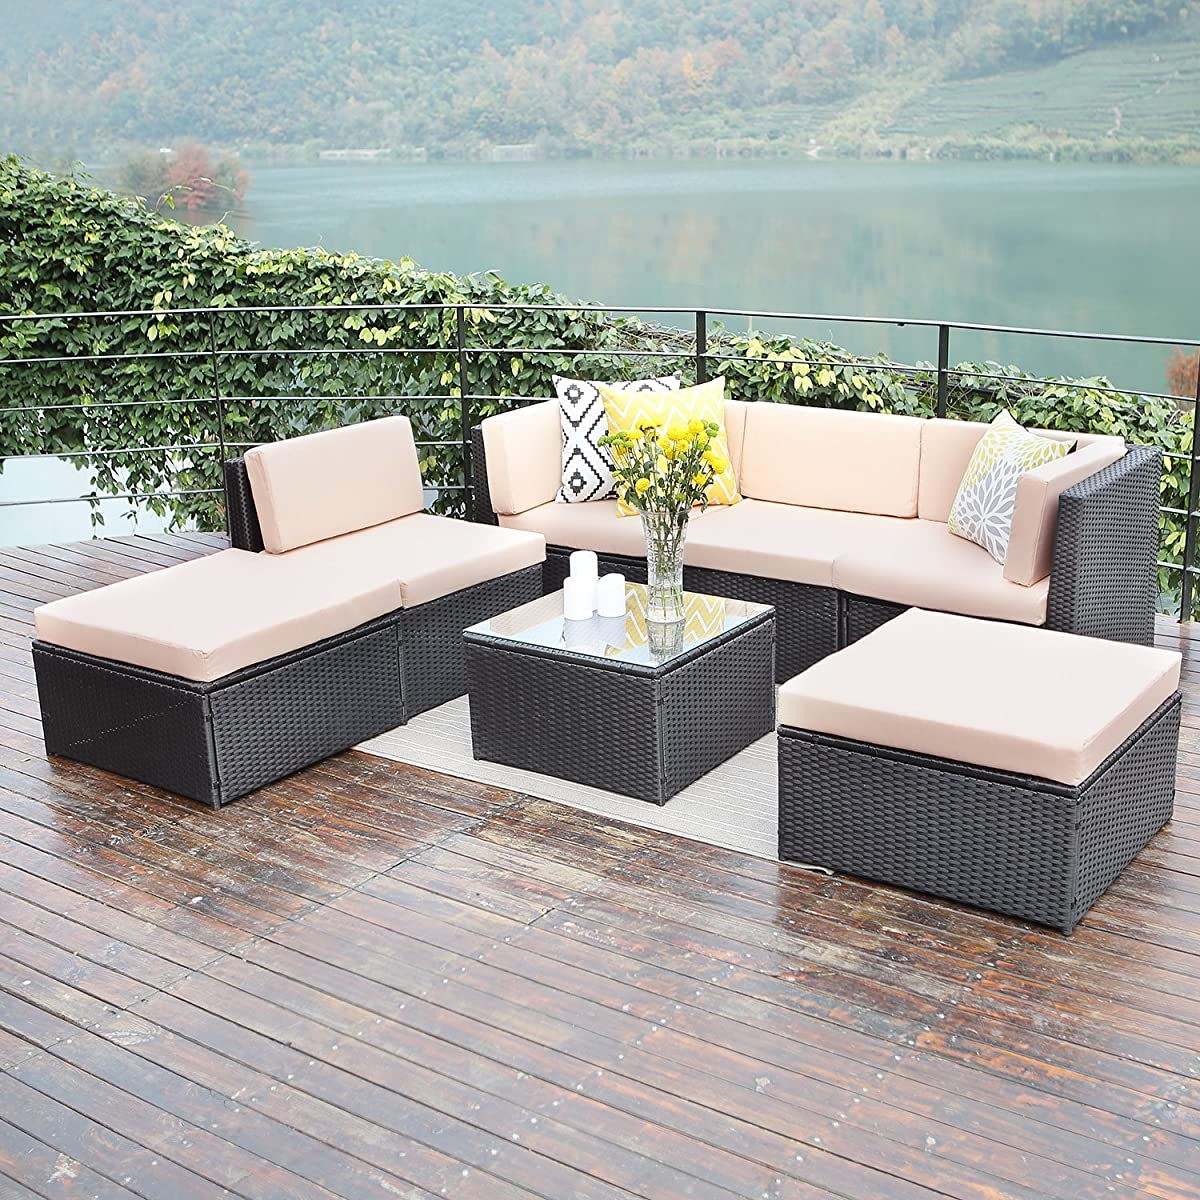 Wisteria Lane Outdoor patio furniture sets, 7 PC Wicker Sofa Set Garden Rattan Sofa Cushioned Seat with Glass Table,Black